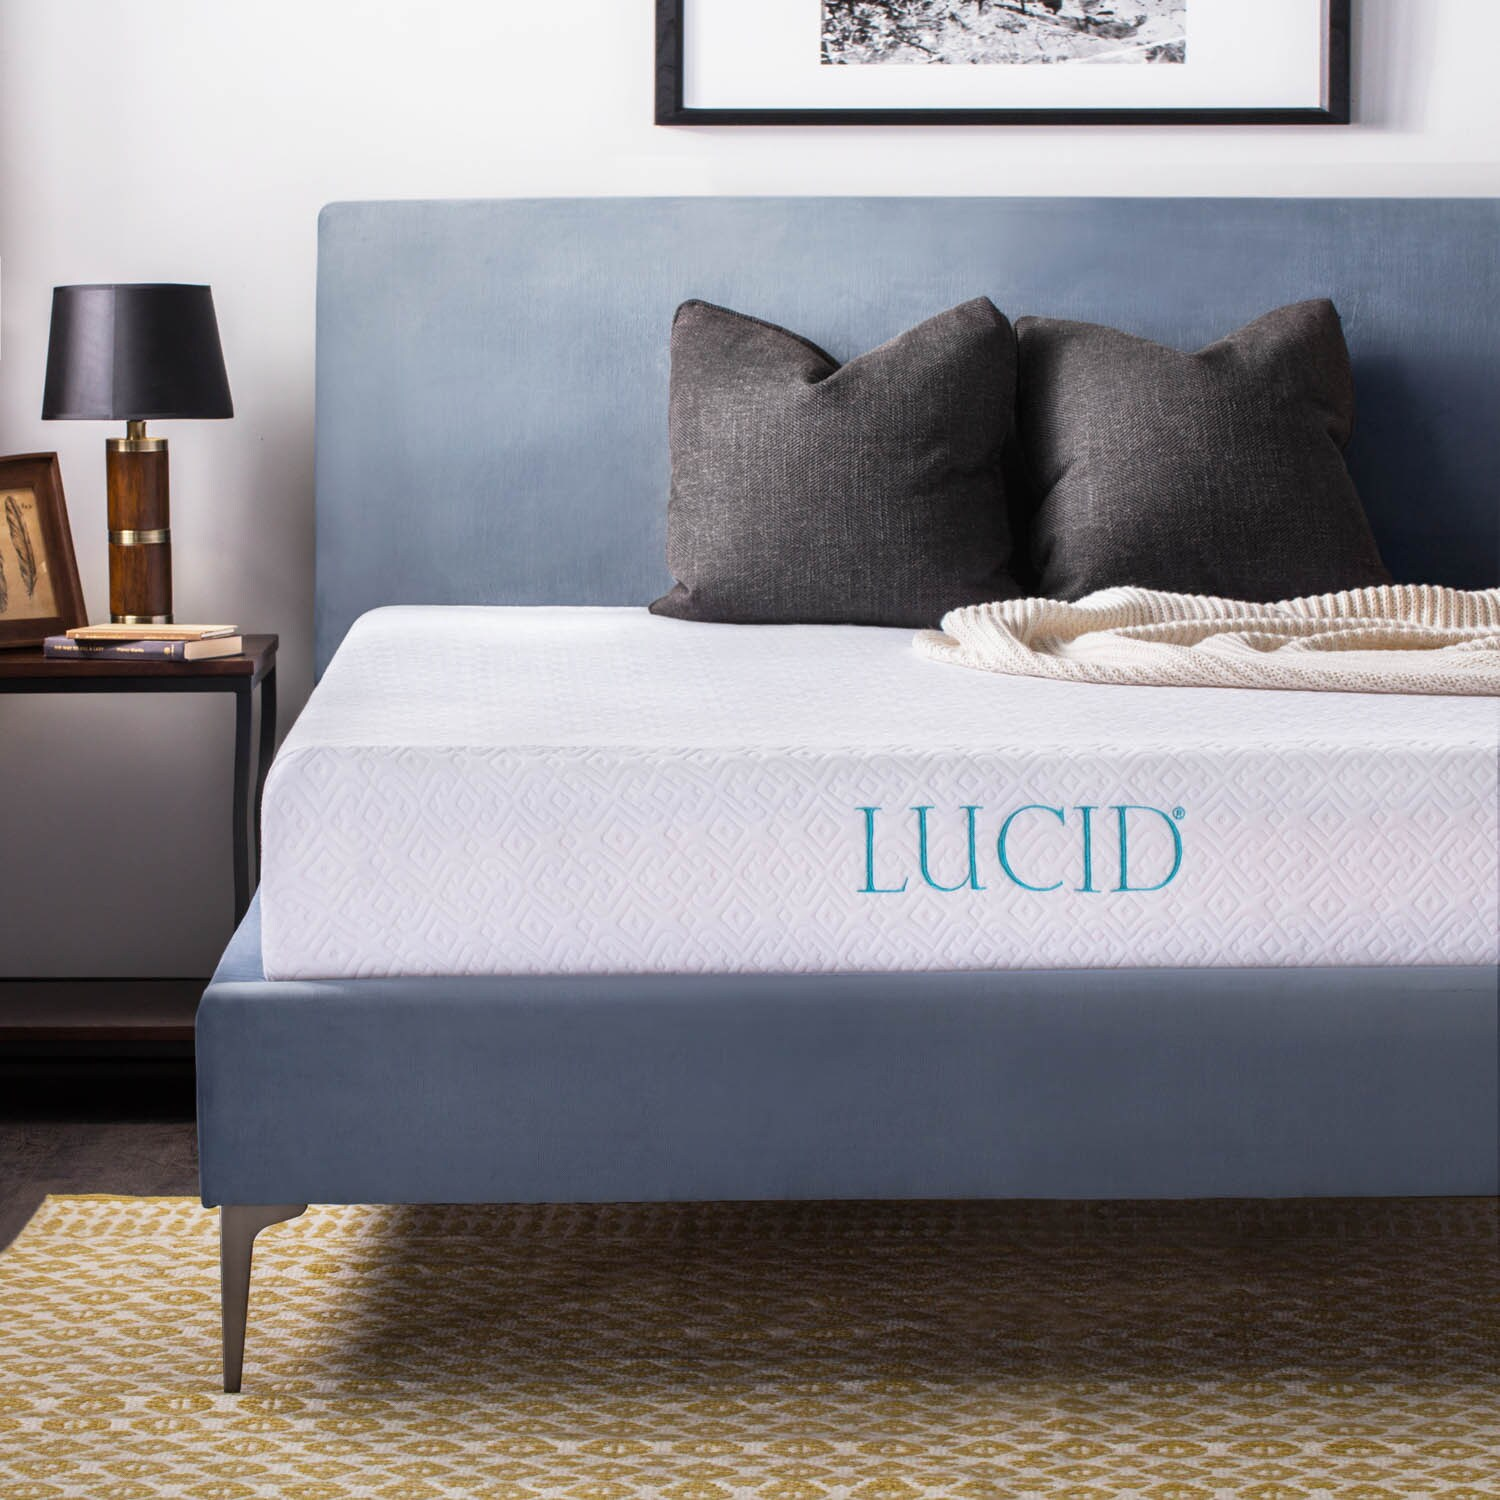 LUCID 10 inch Short Queen size Gel Memory Foam Mattress Free